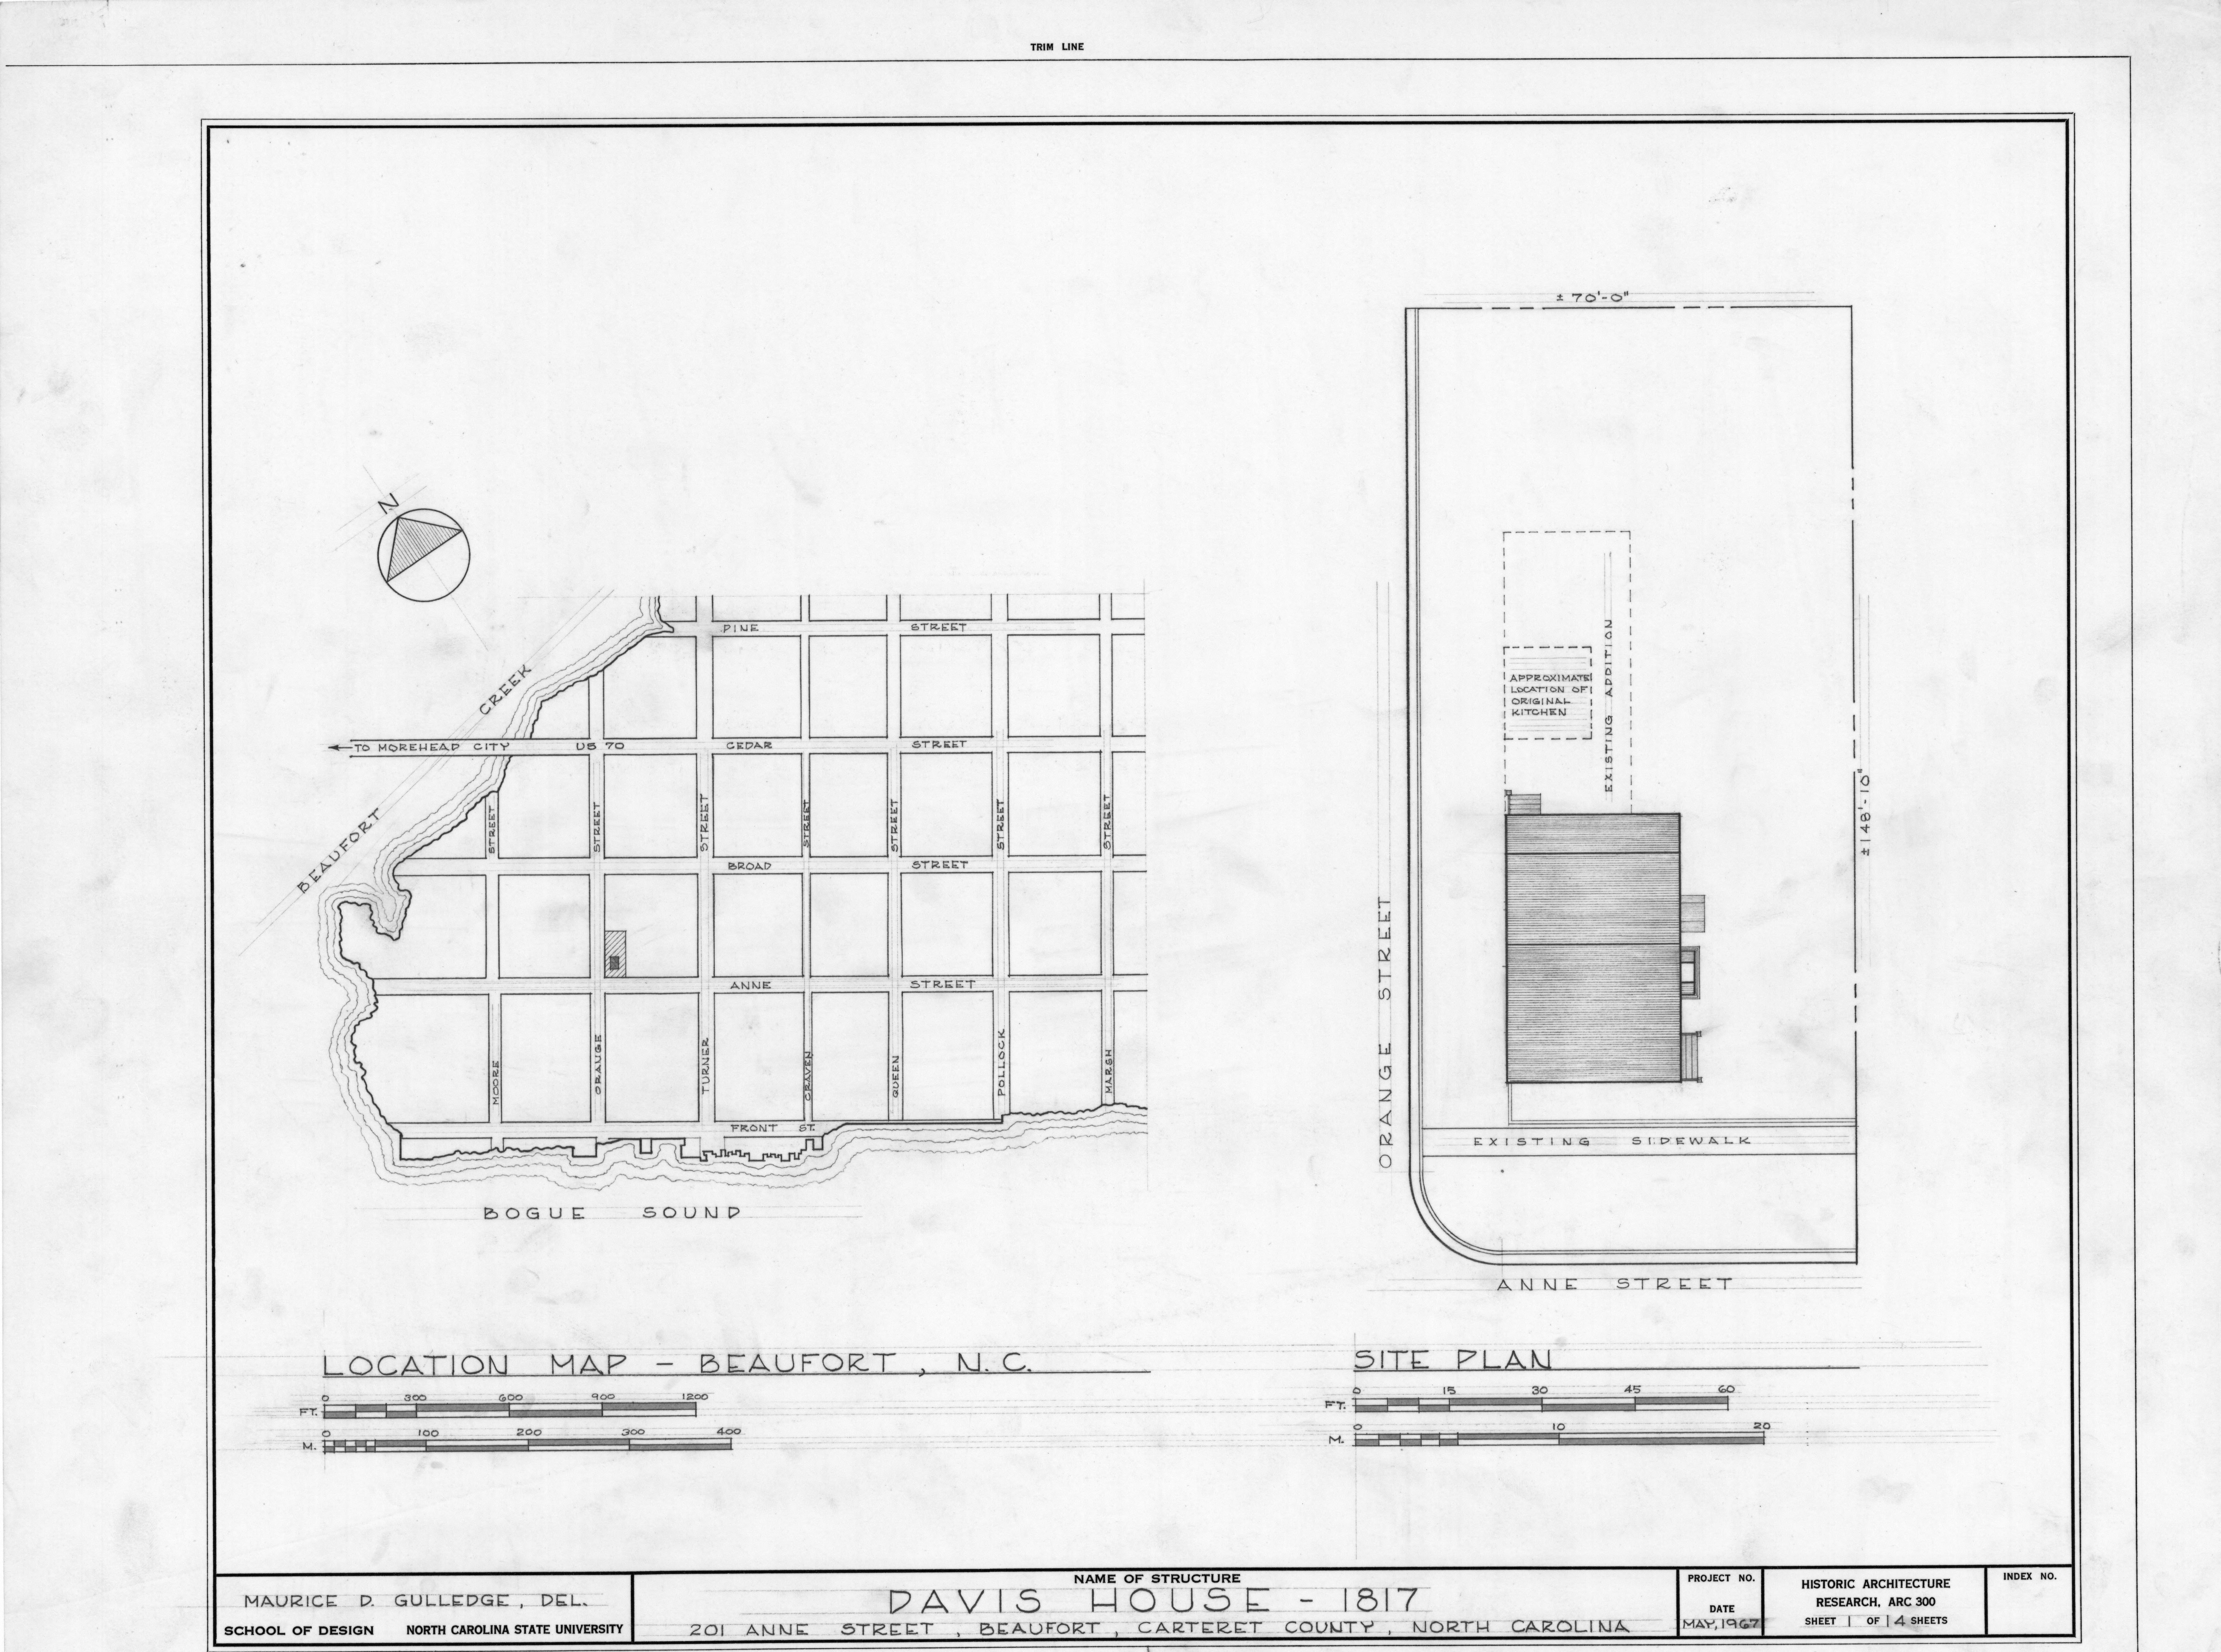 Site Plan And Location Map Davis House Beaufort North